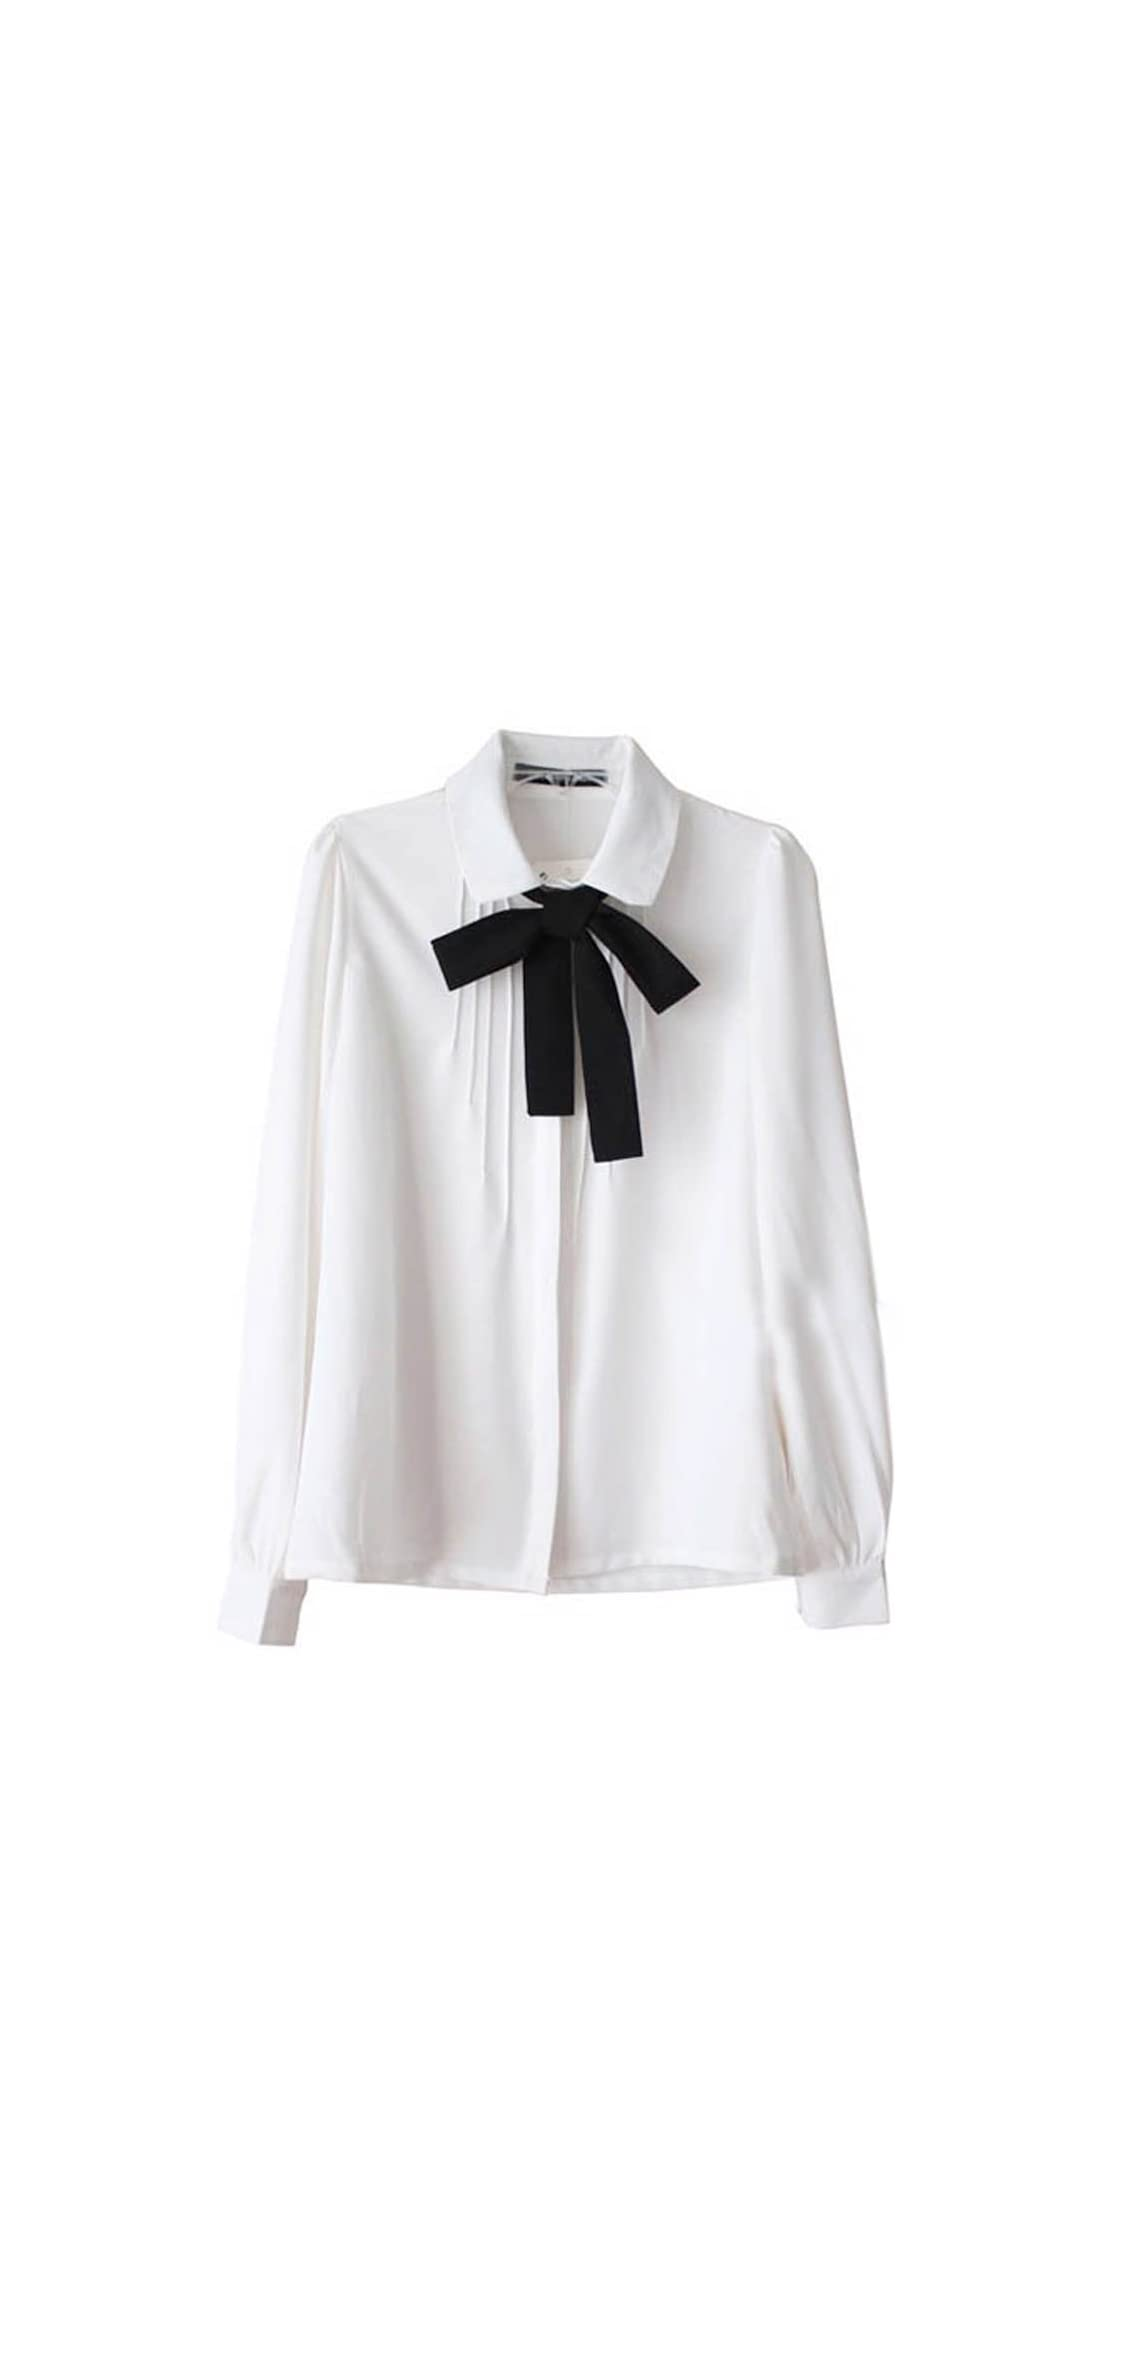 Lady Bowknot Baby Peter Pan Collar Shirt Womens Long Ol